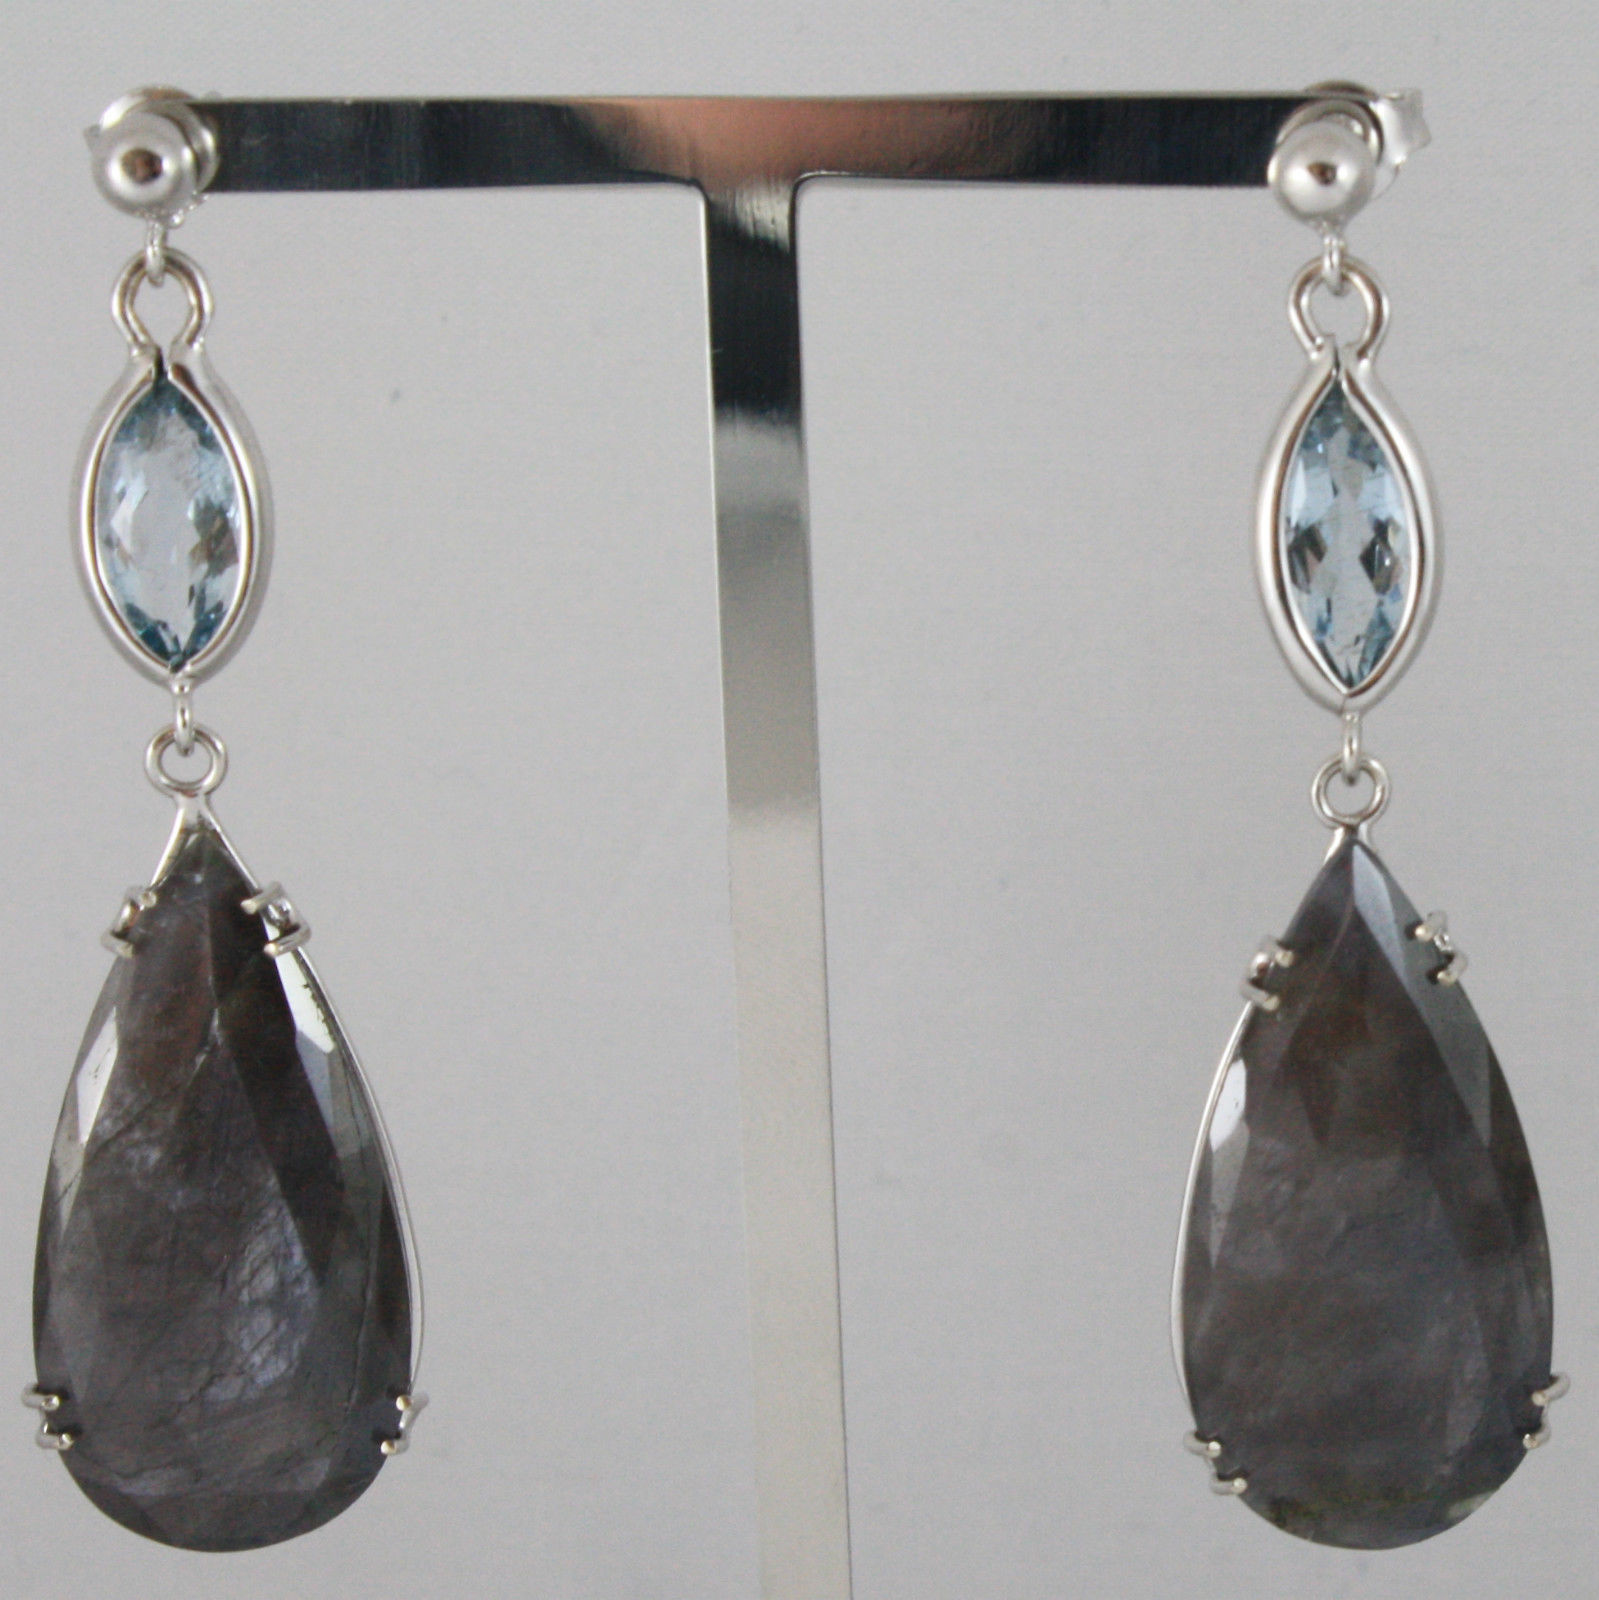 18K WHITE GOLD DROP EARRINGS, AQUAMARINE CT 2.50 SAPPHIRE CT 29.50 MADE IN ITALY